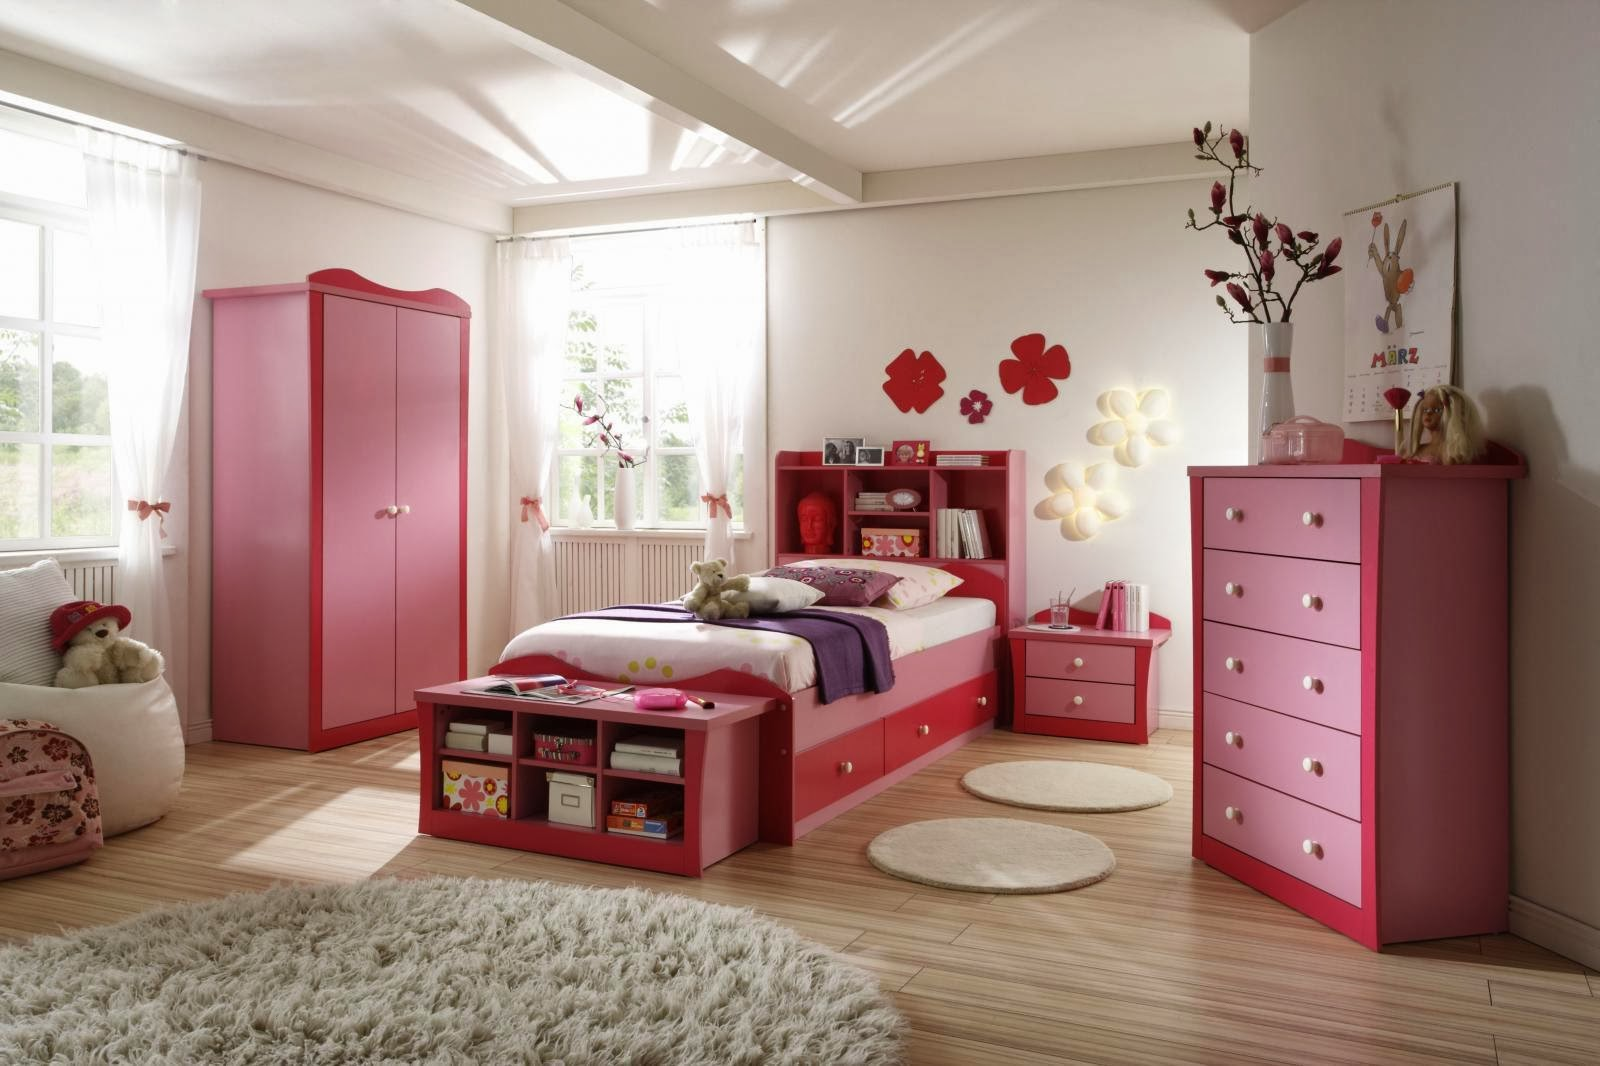 girl bedroom ideas home decorating interior design ideas pink bedding for a big or little girls bedroom 2937